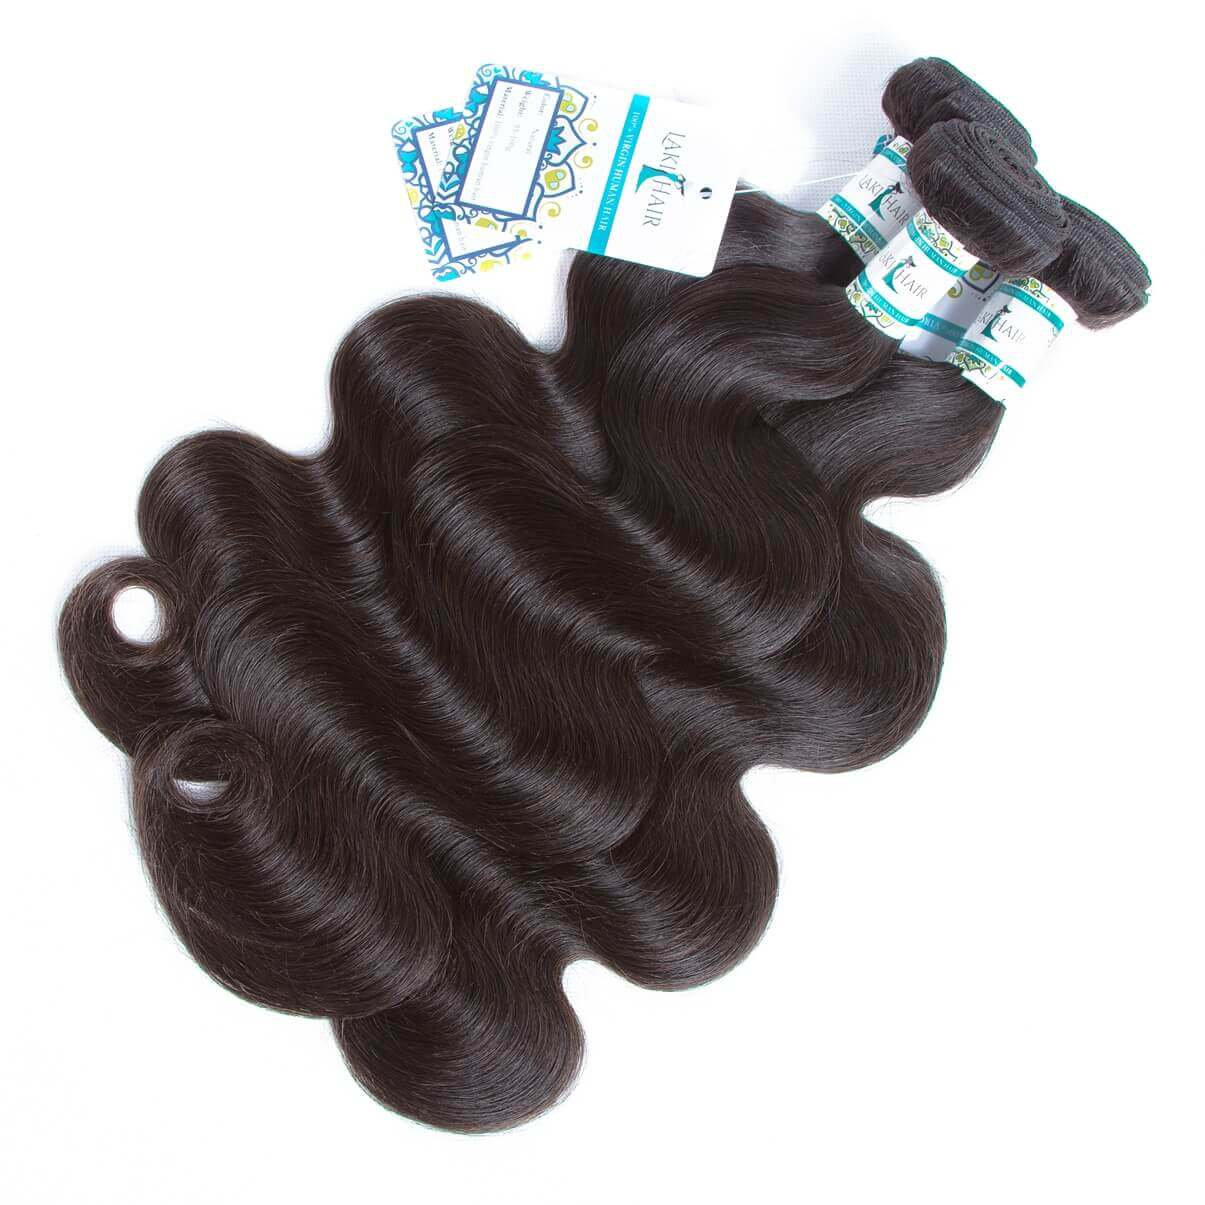 Lakihair Brazilian Body Wave Human Hair Weaving 3 Bundles Unprocessed Virgin Human Hair Extensions